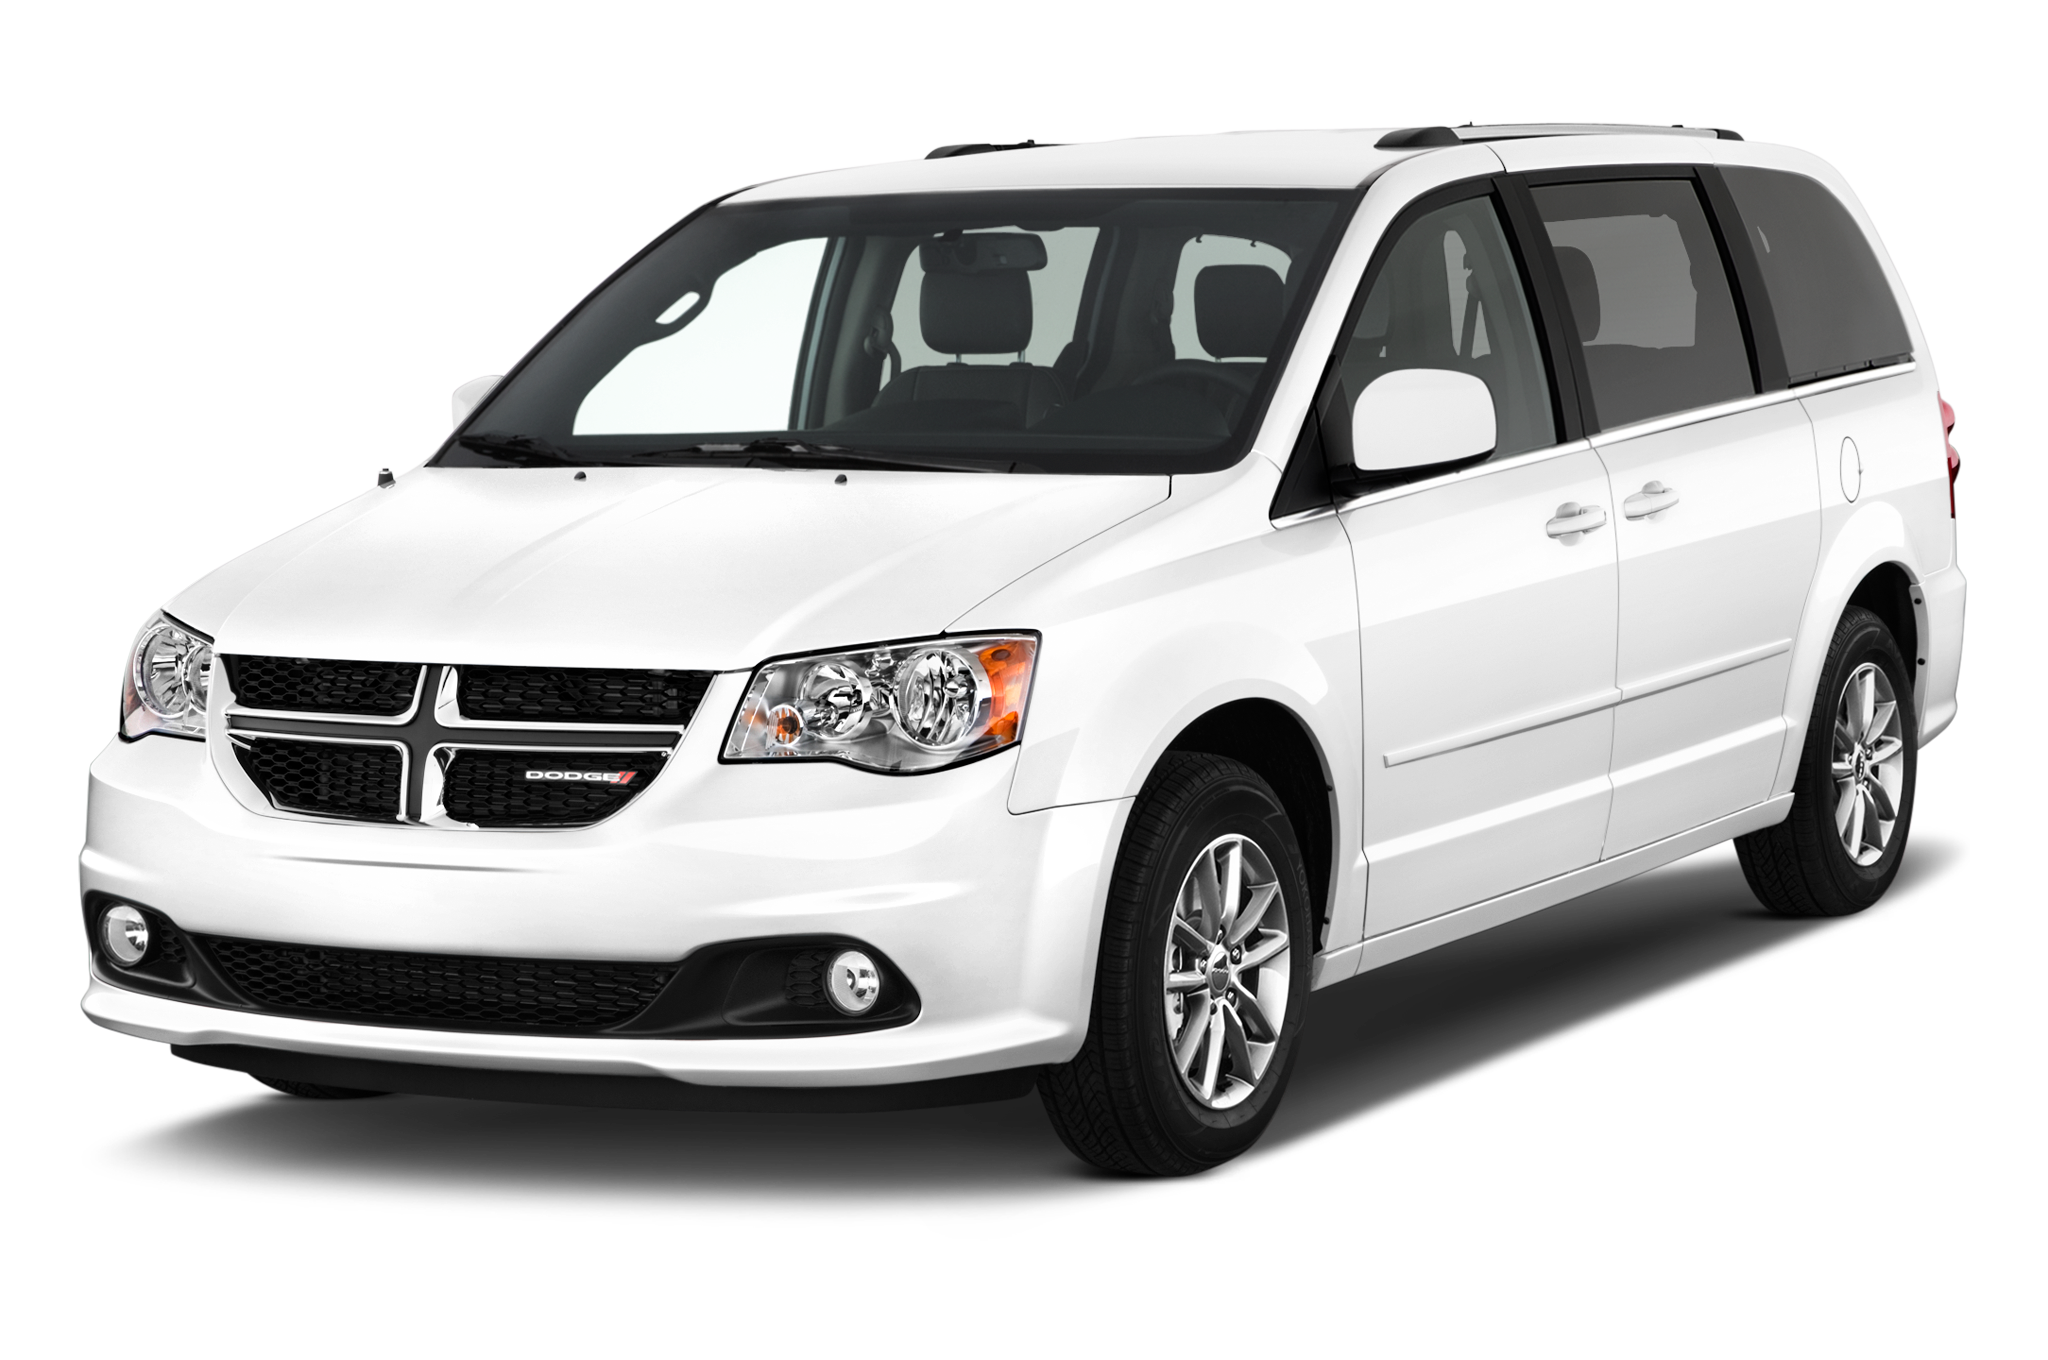 2017 dodge grand caravan gt interior features msn autos. Black Bedroom Furniture Sets. Home Design Ideas